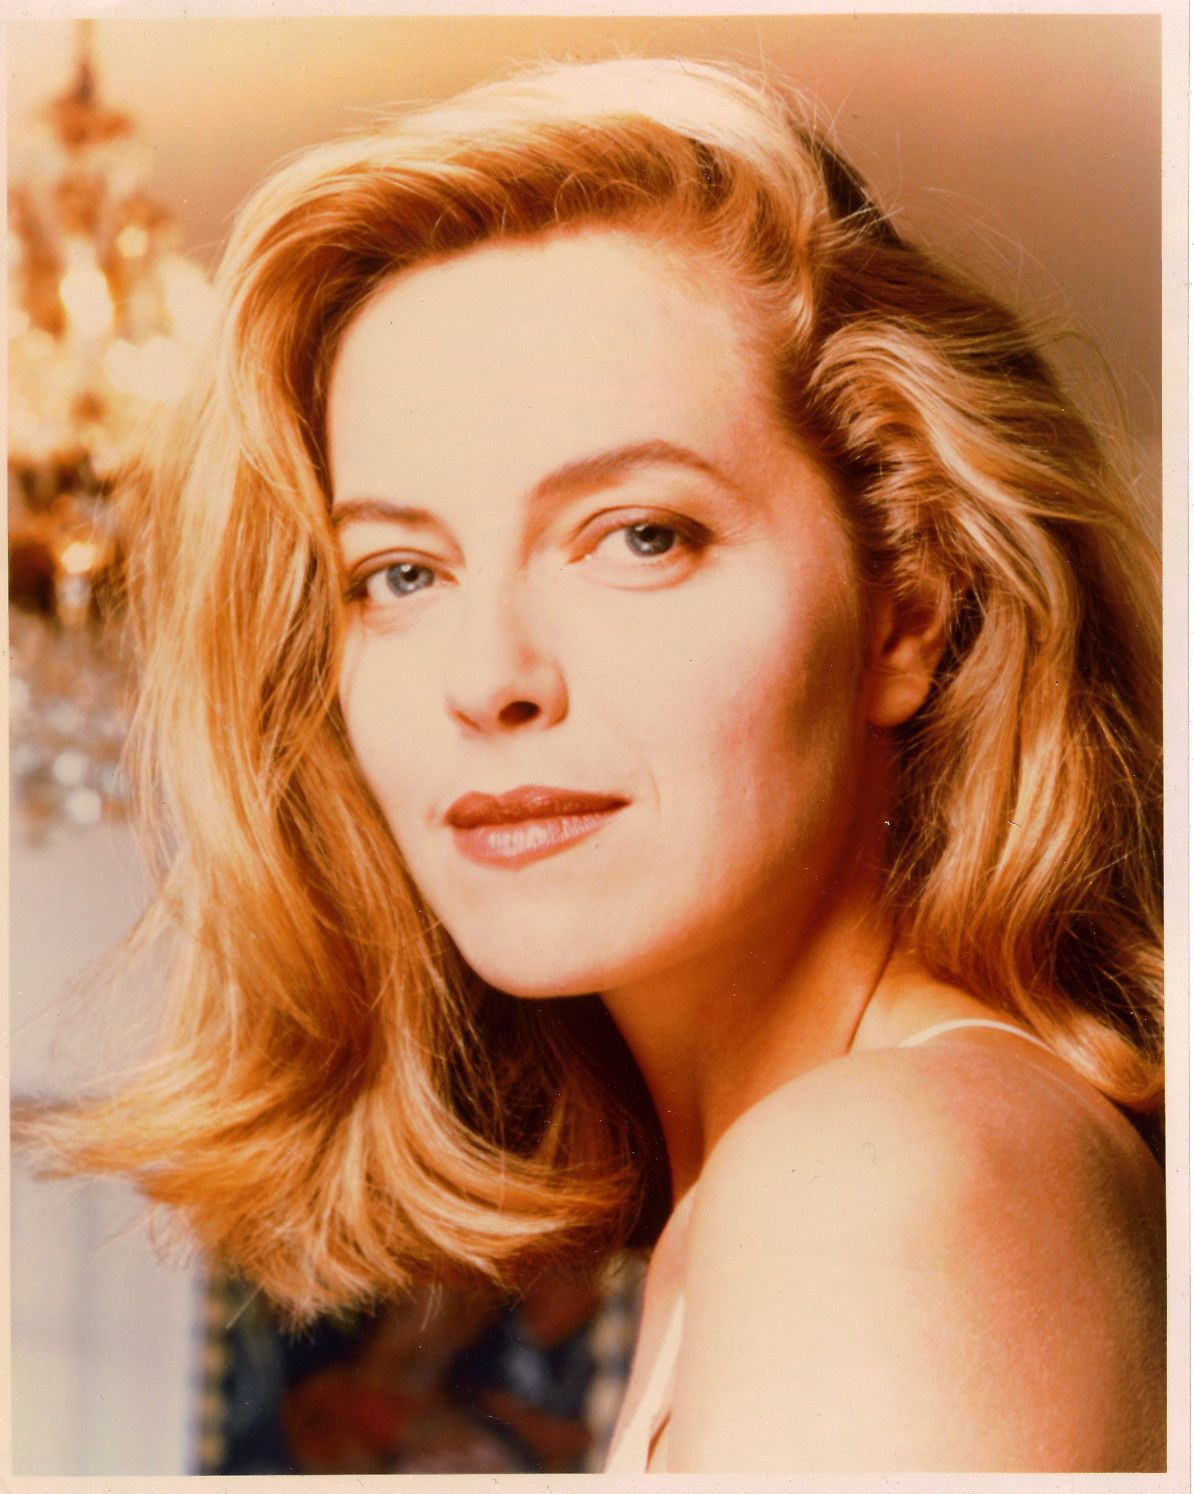 Fabulous Hollywood Memories - Your best source for movie memorabilia, photos and more : Greta Scacchi 8x10 photo G2185